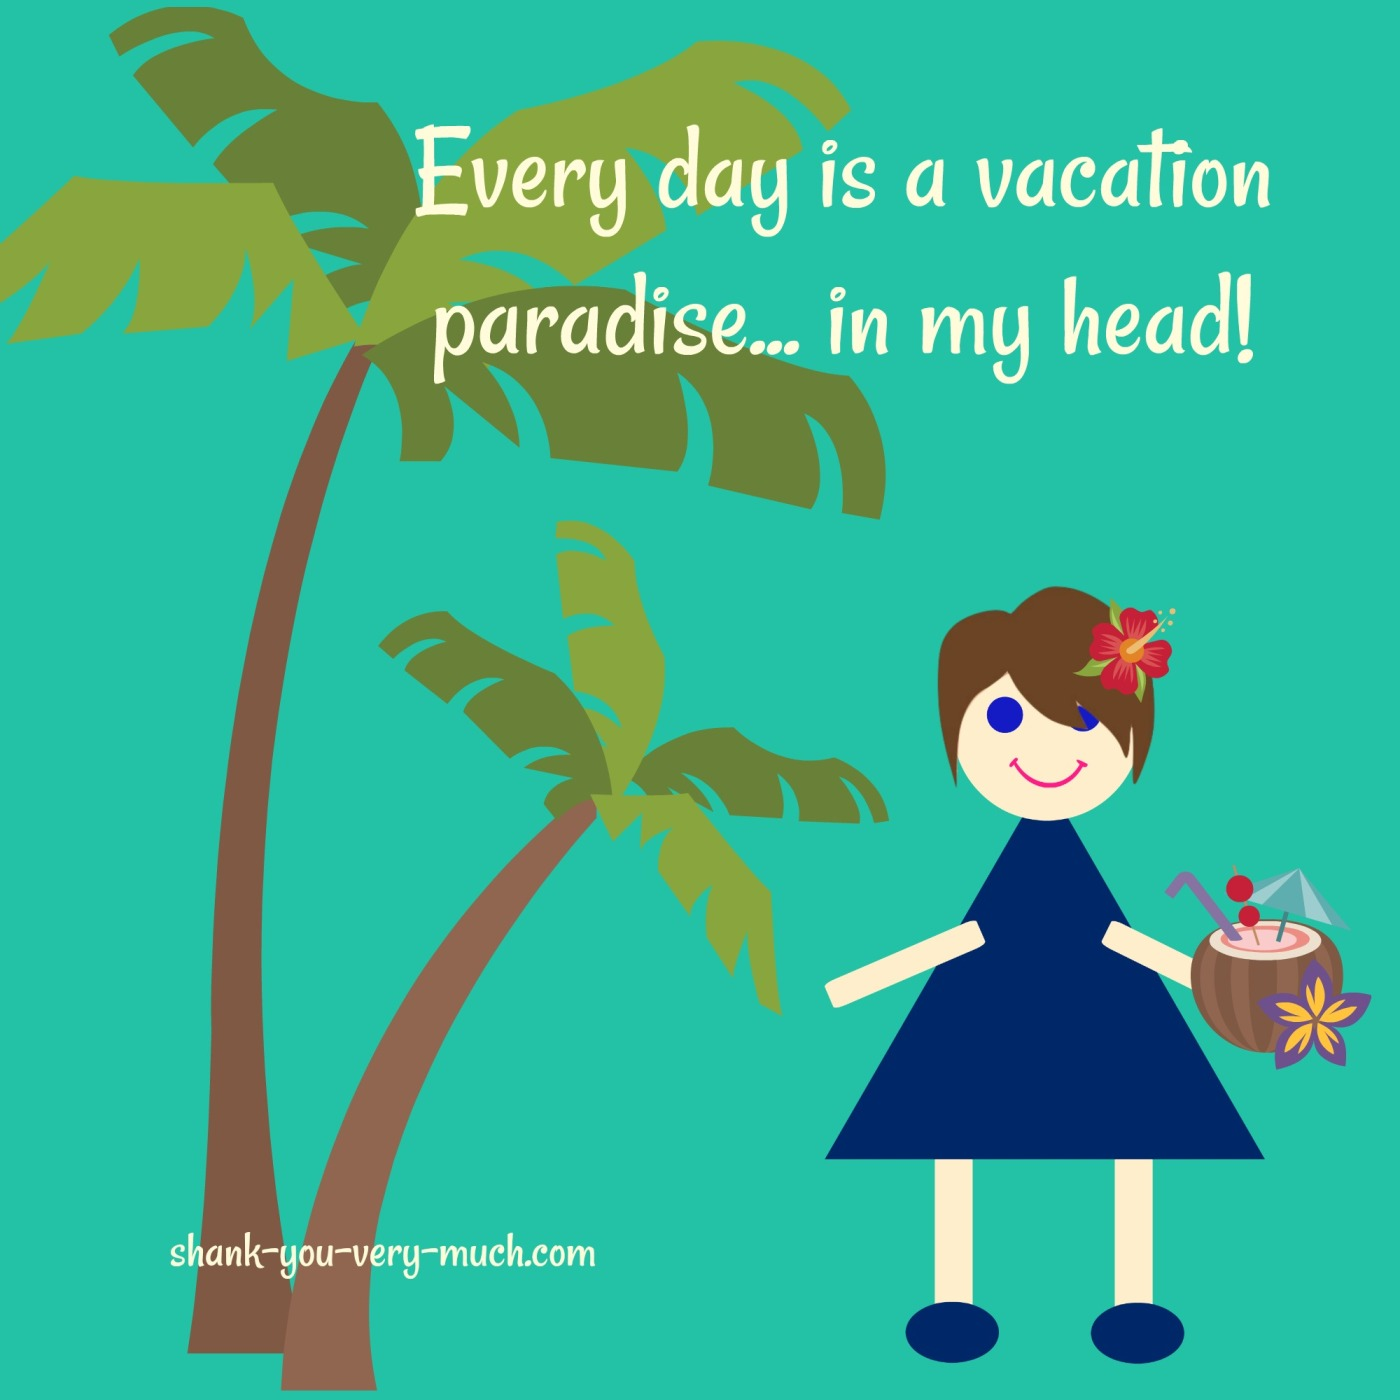 """A cartoon version of me holding an adult beverage in a coconut shell, standing next to a palm tree. The caption says """"every day is a vacation paradise... in my head!"""""""